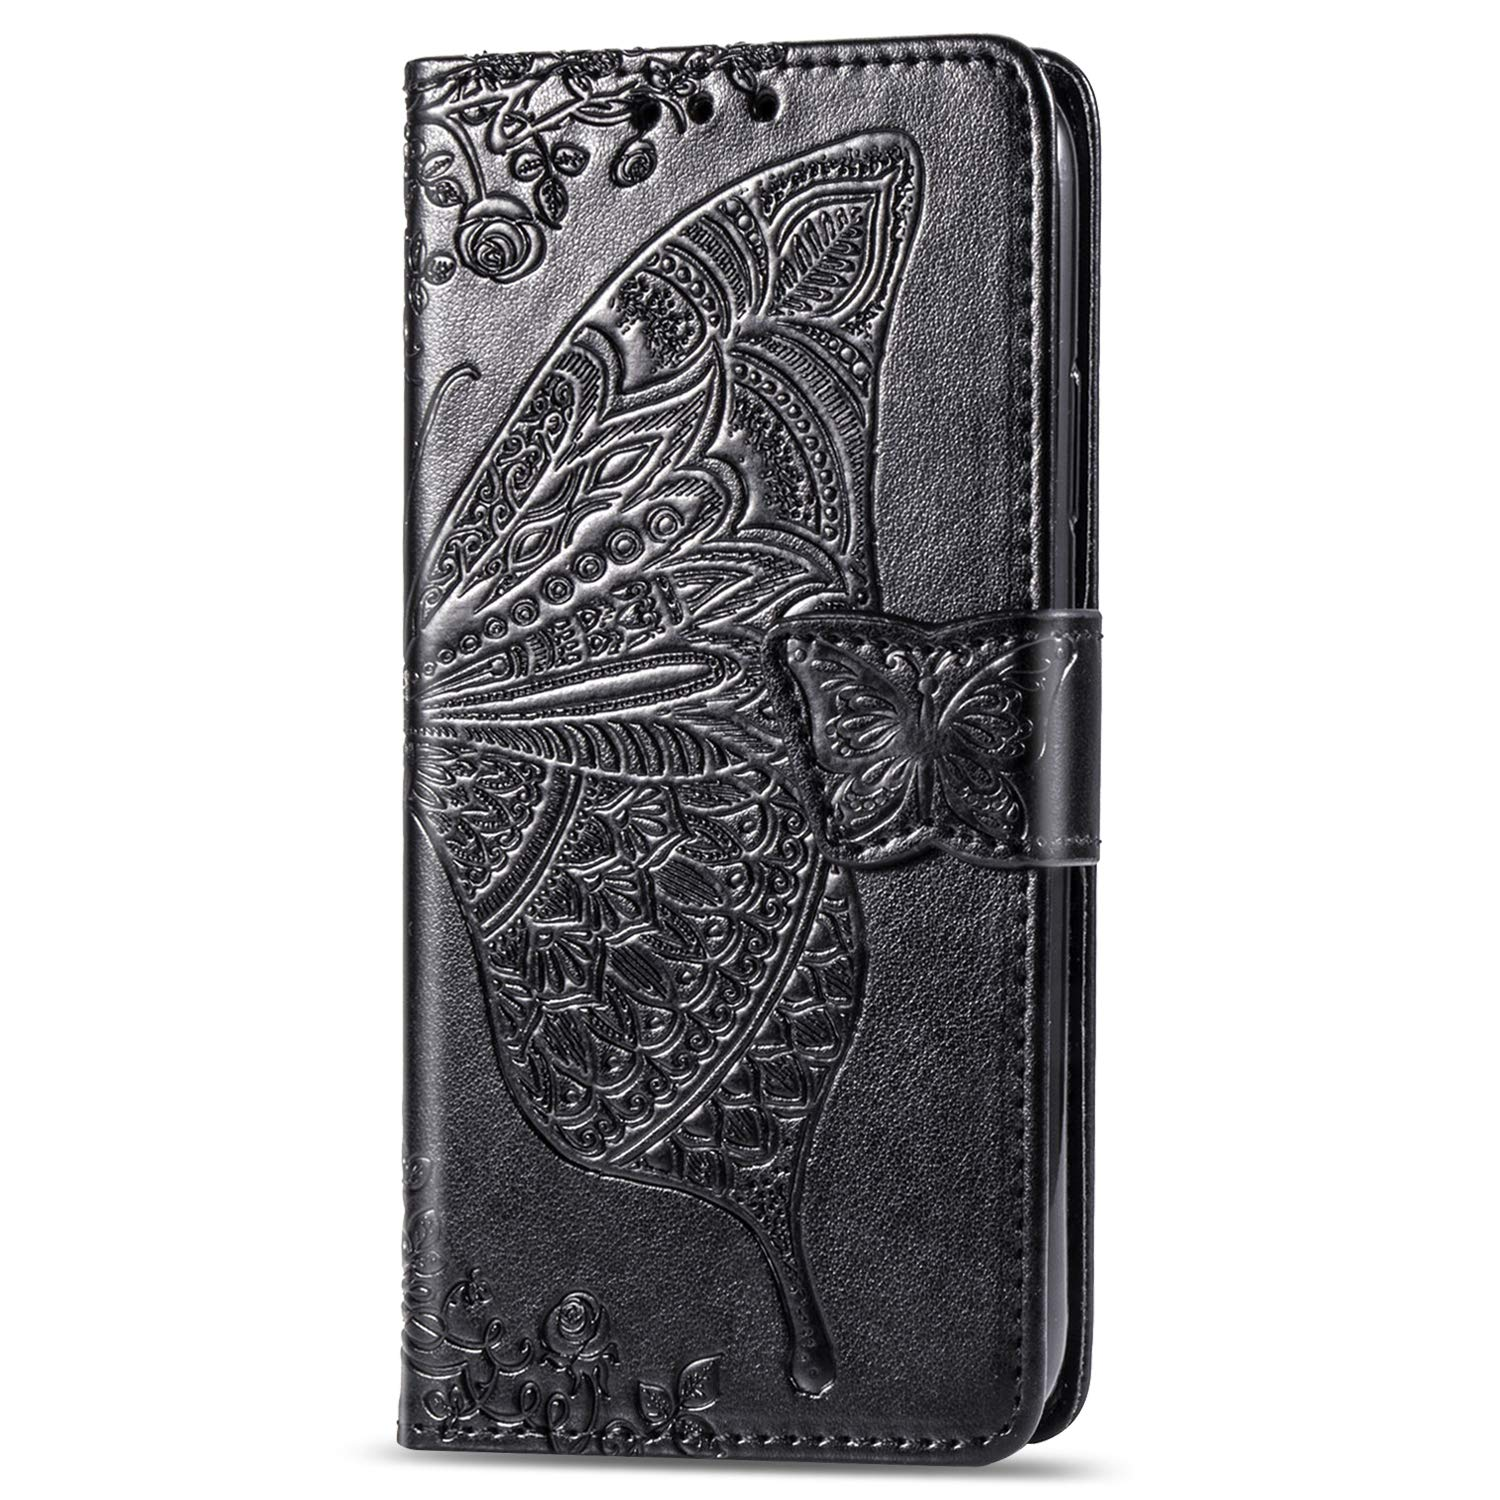 Veapero Samsung Galaxy A70 Case,PU Leather Flip Case Notebook Wallet Cover Embossed Butterfly with Magnetic Stand Card Holder ID Slots Soft TPU Bumper Protective Skin,Gray